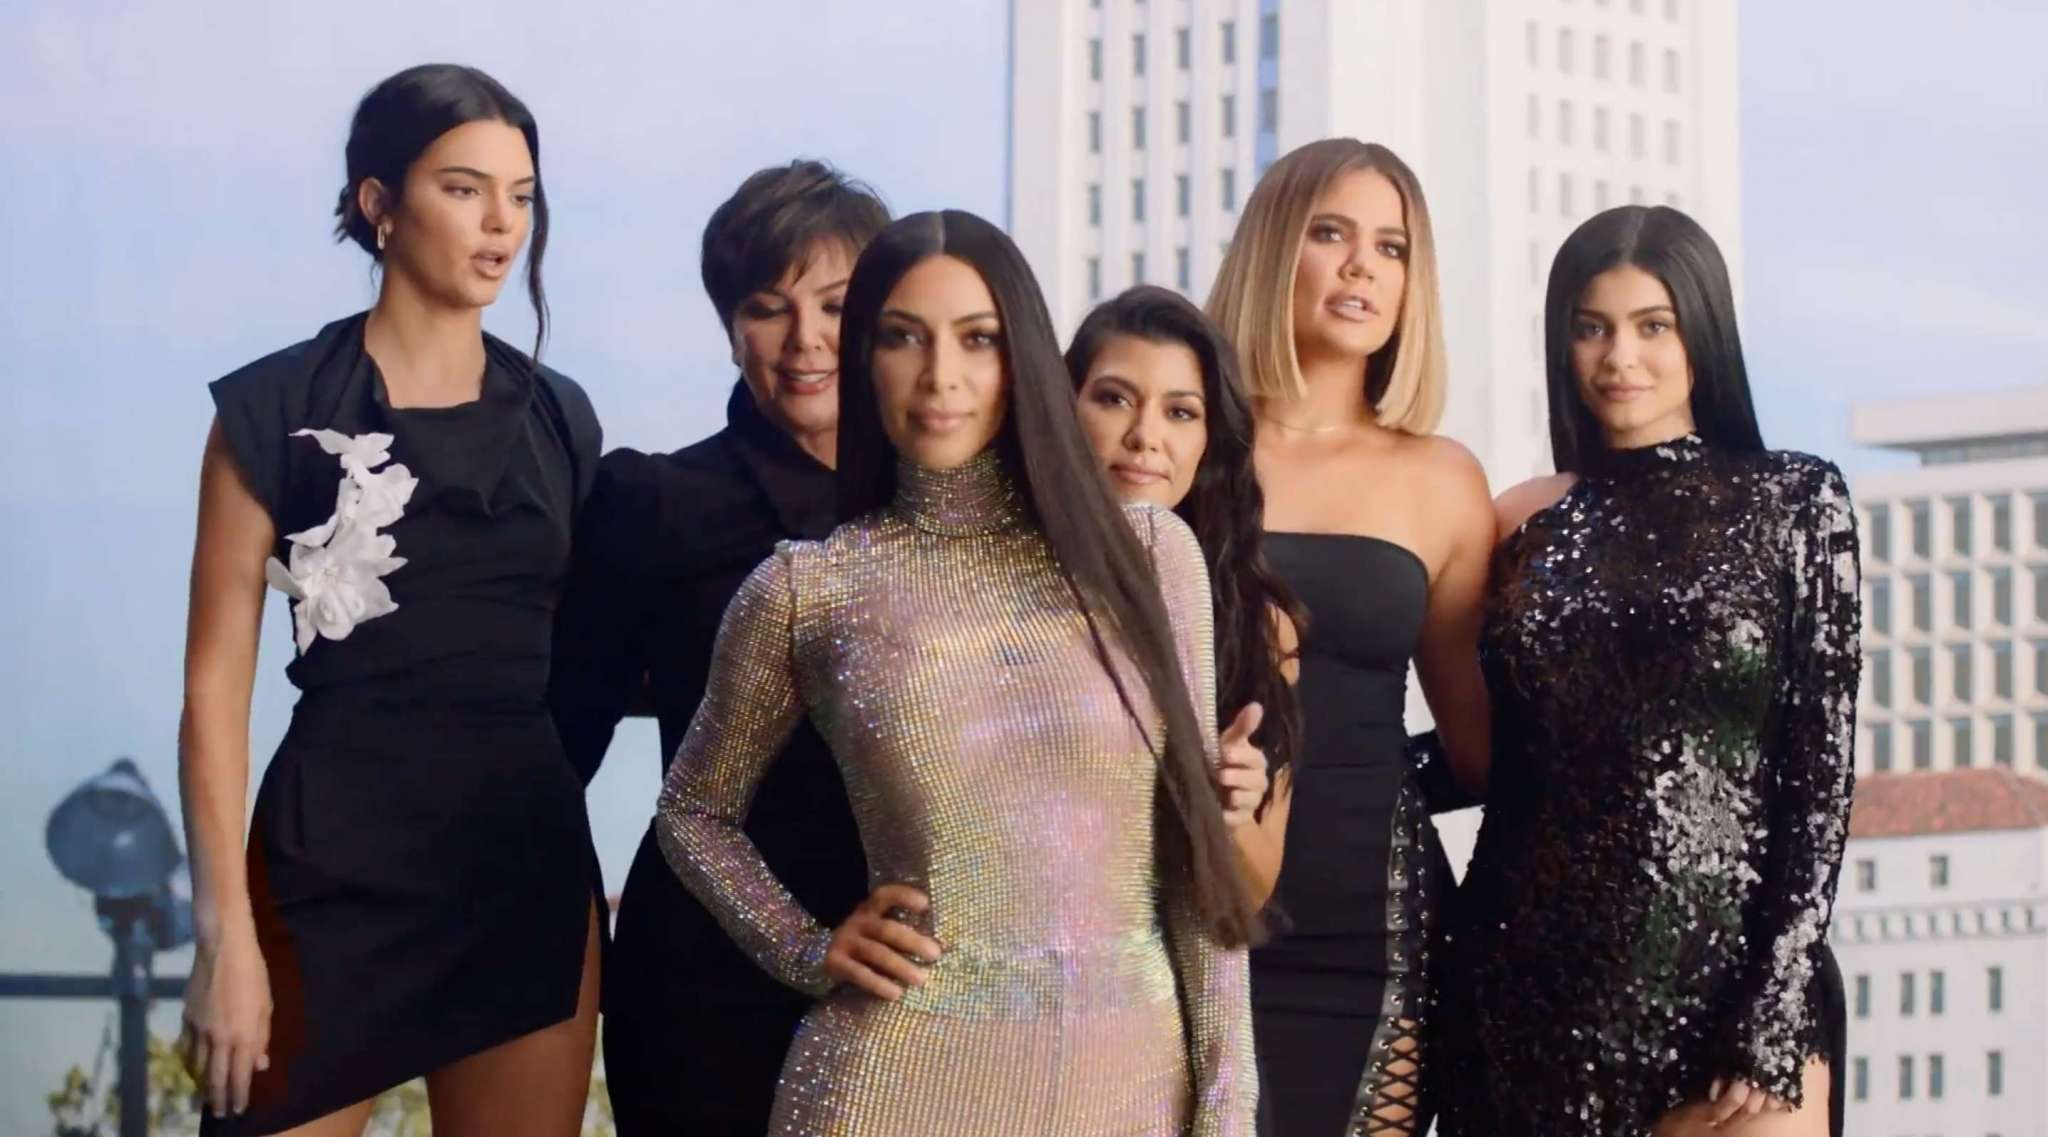 khloe-kardashian-screams-that-her-family-was-ruined-in-new-kuwk-trailer-jordyn-woods-drama-directly-addressed